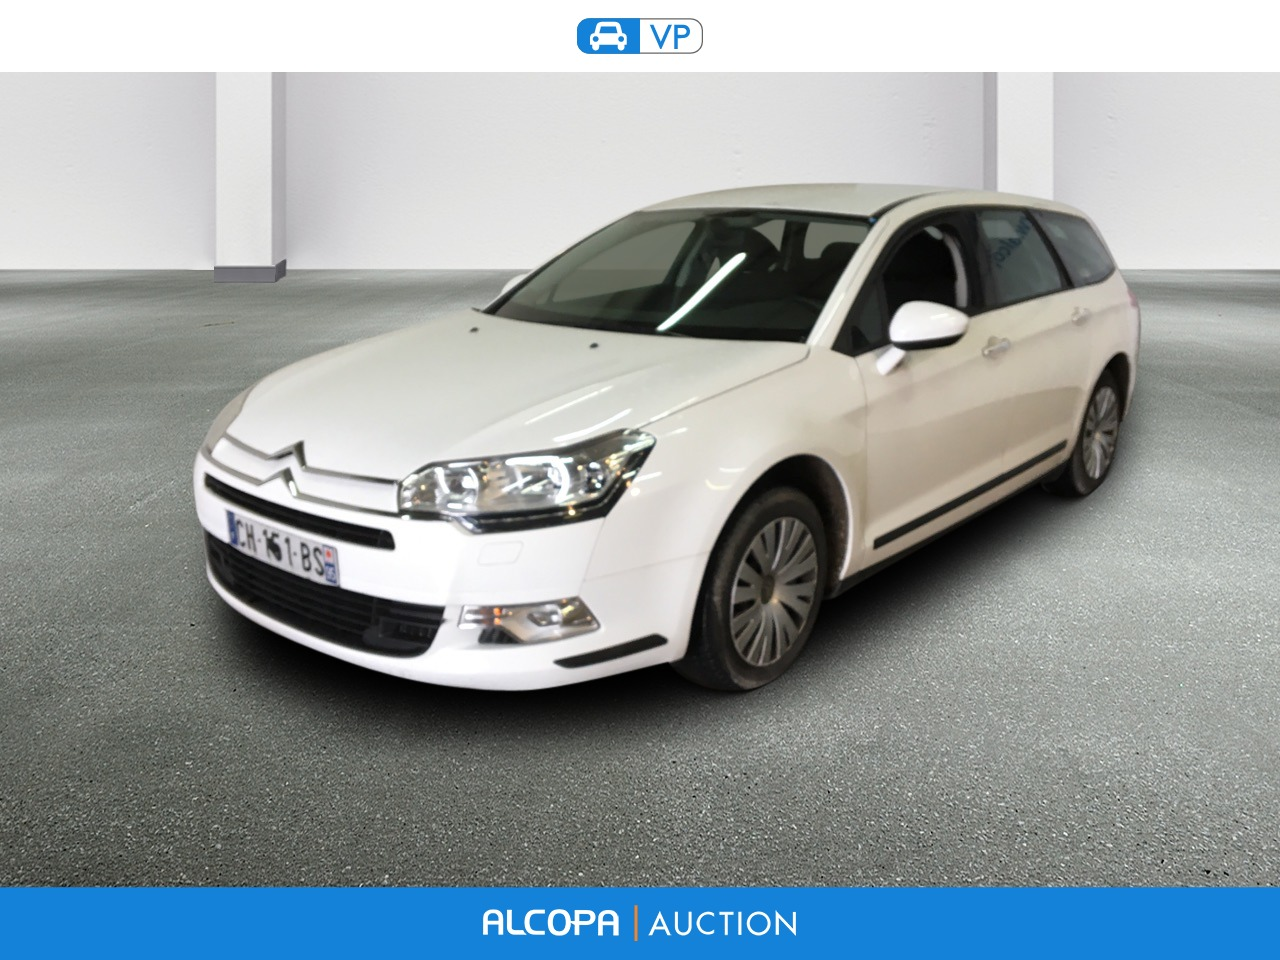 citroen c5 tourer 03 2008 07 2017 c5 tourer hdi 110 fap attraction alcopa auction. Black Bedroom Furniture Sets. Home Design Ideas